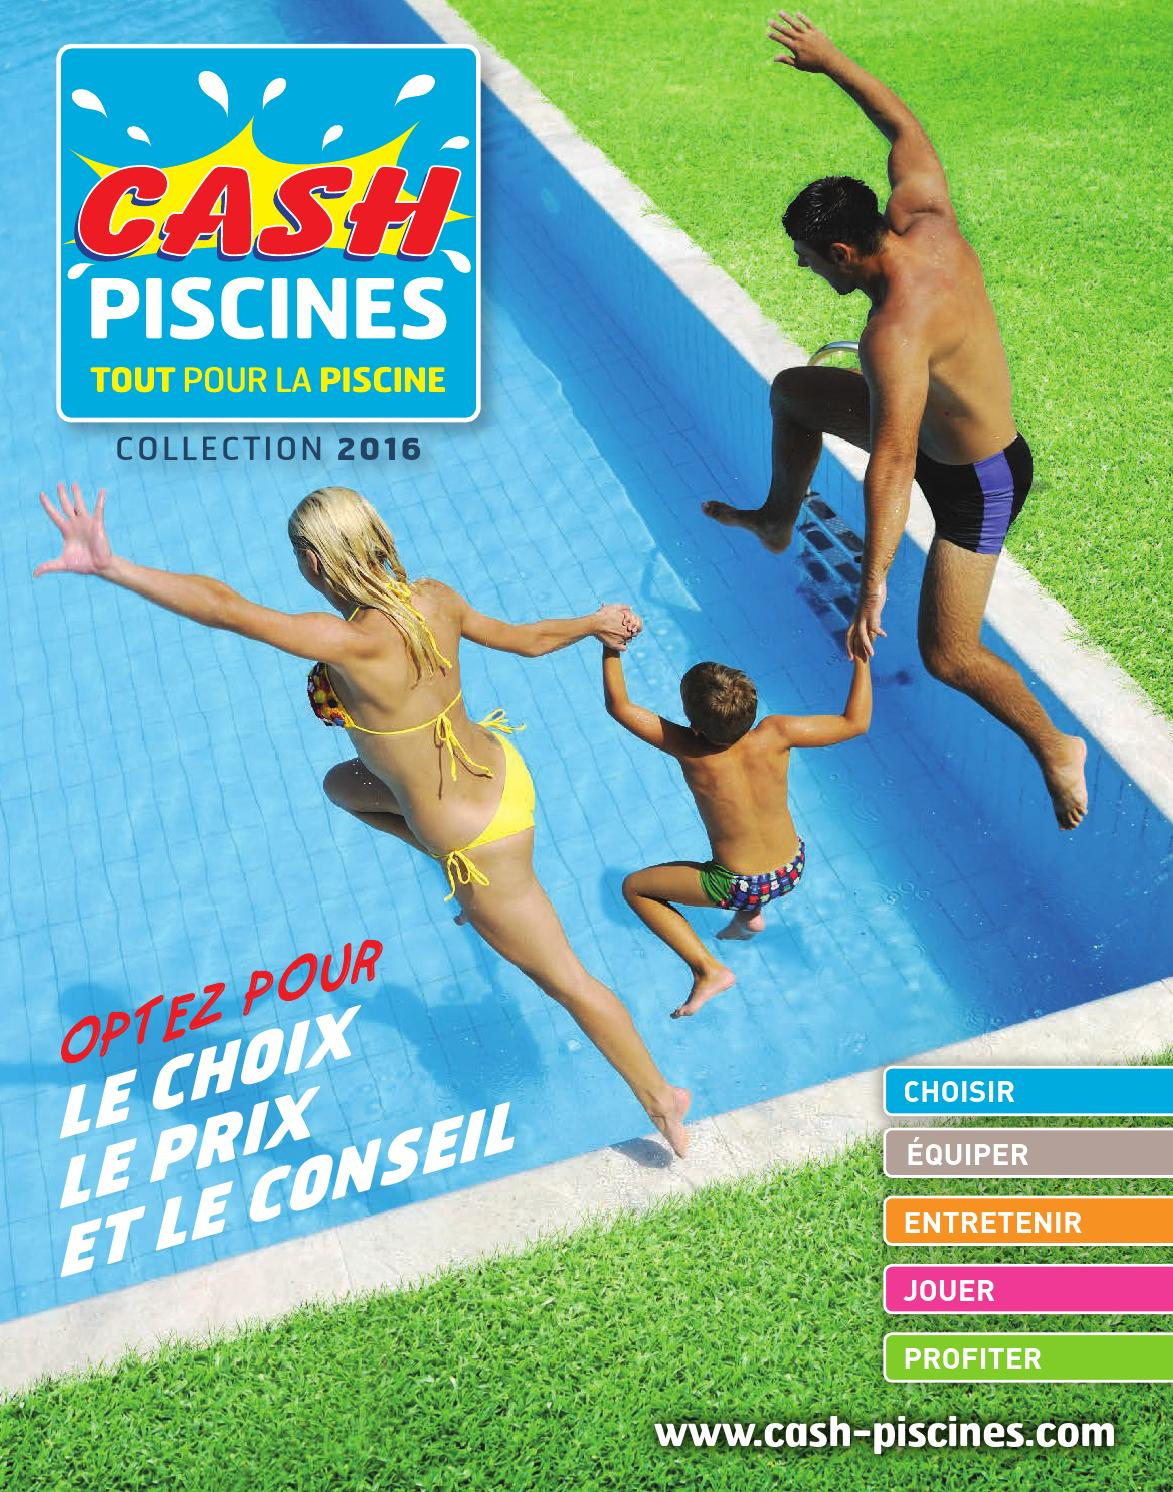 Cash piscines 2016 by octave octave issuu - Piscine cash piscine ...